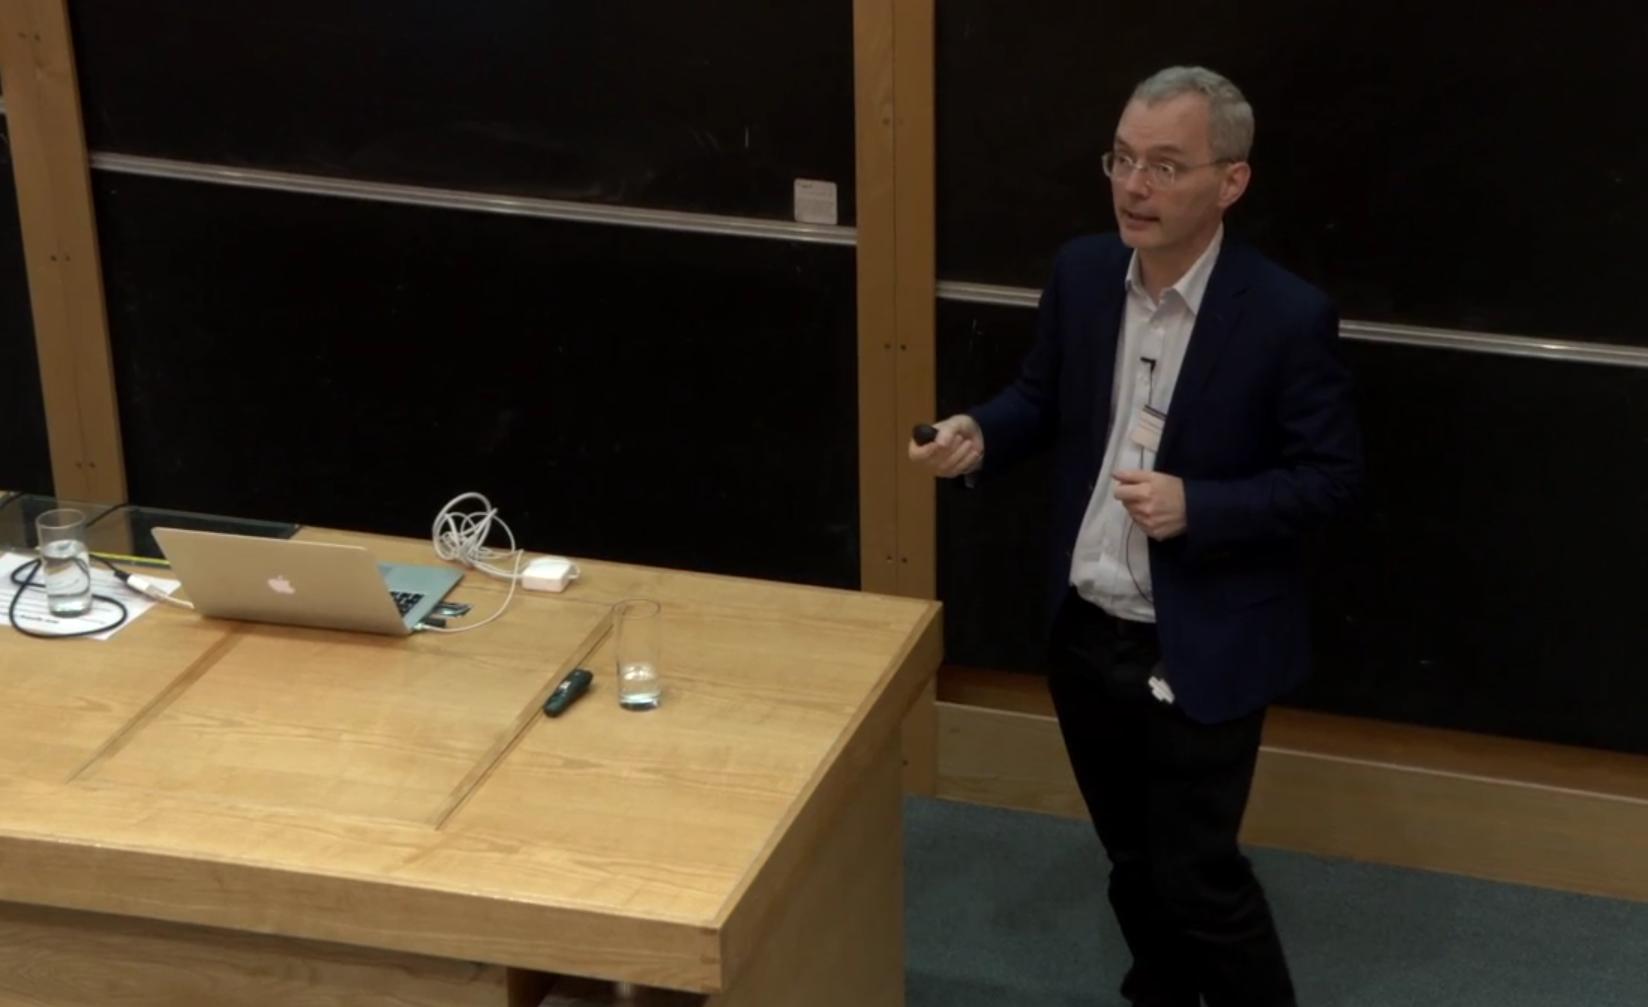 Male professor talks at front of lecture theatre